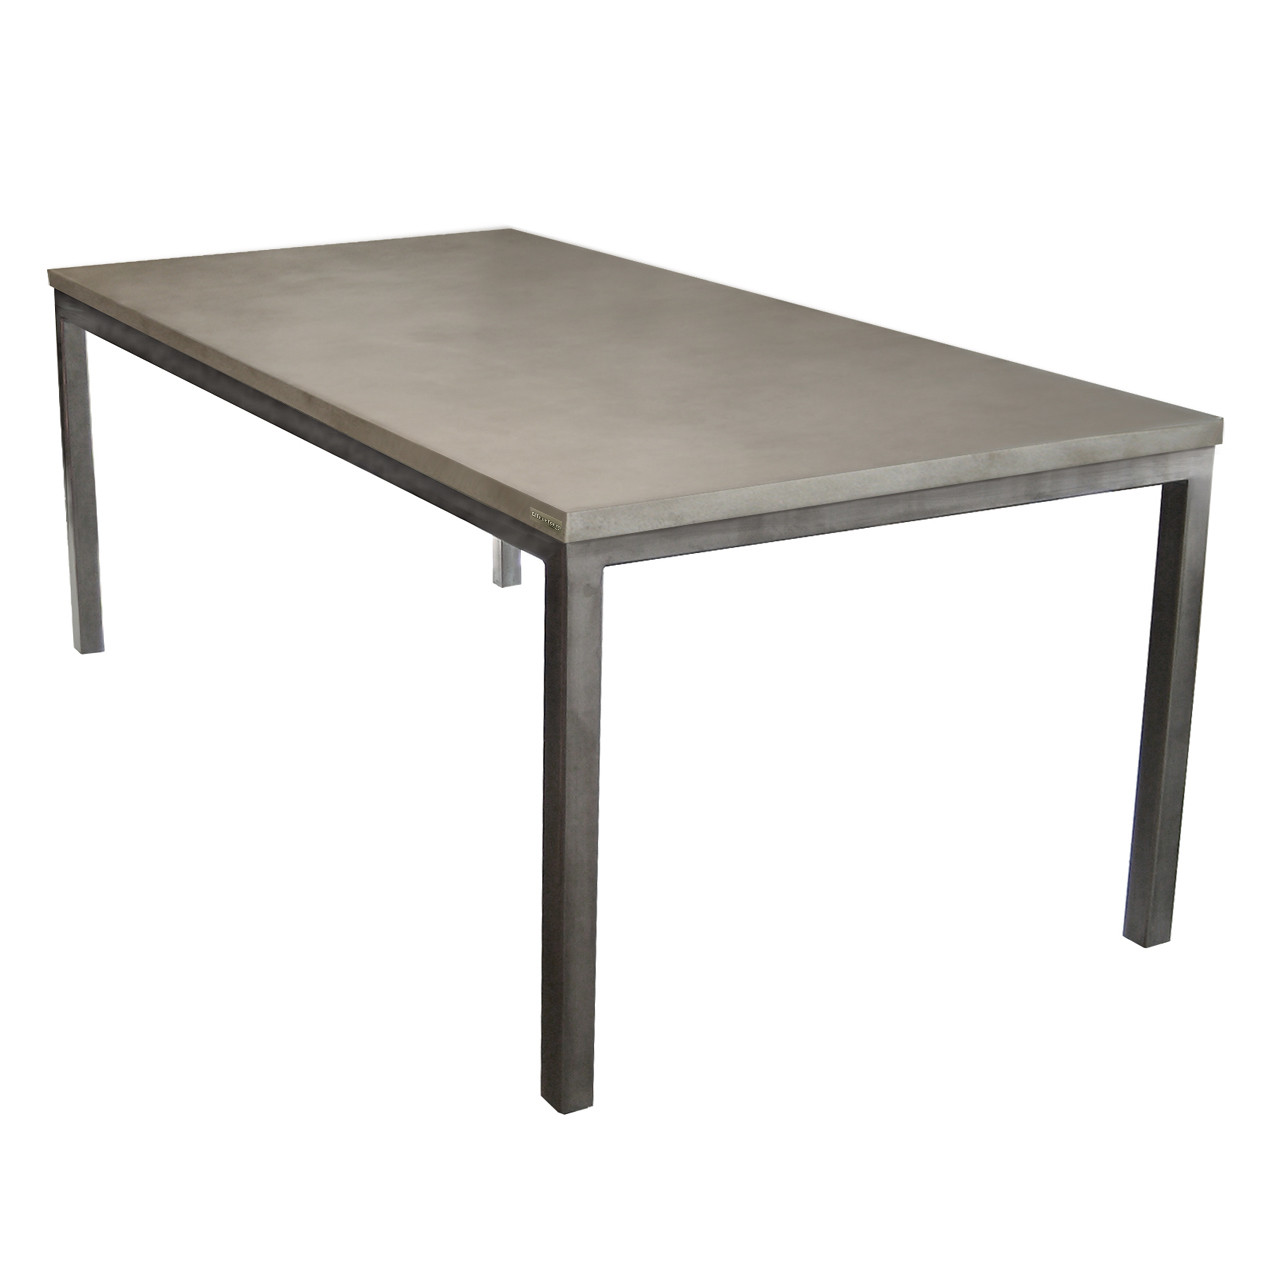 London Concrete Dining & Kitchen Table - Trueform